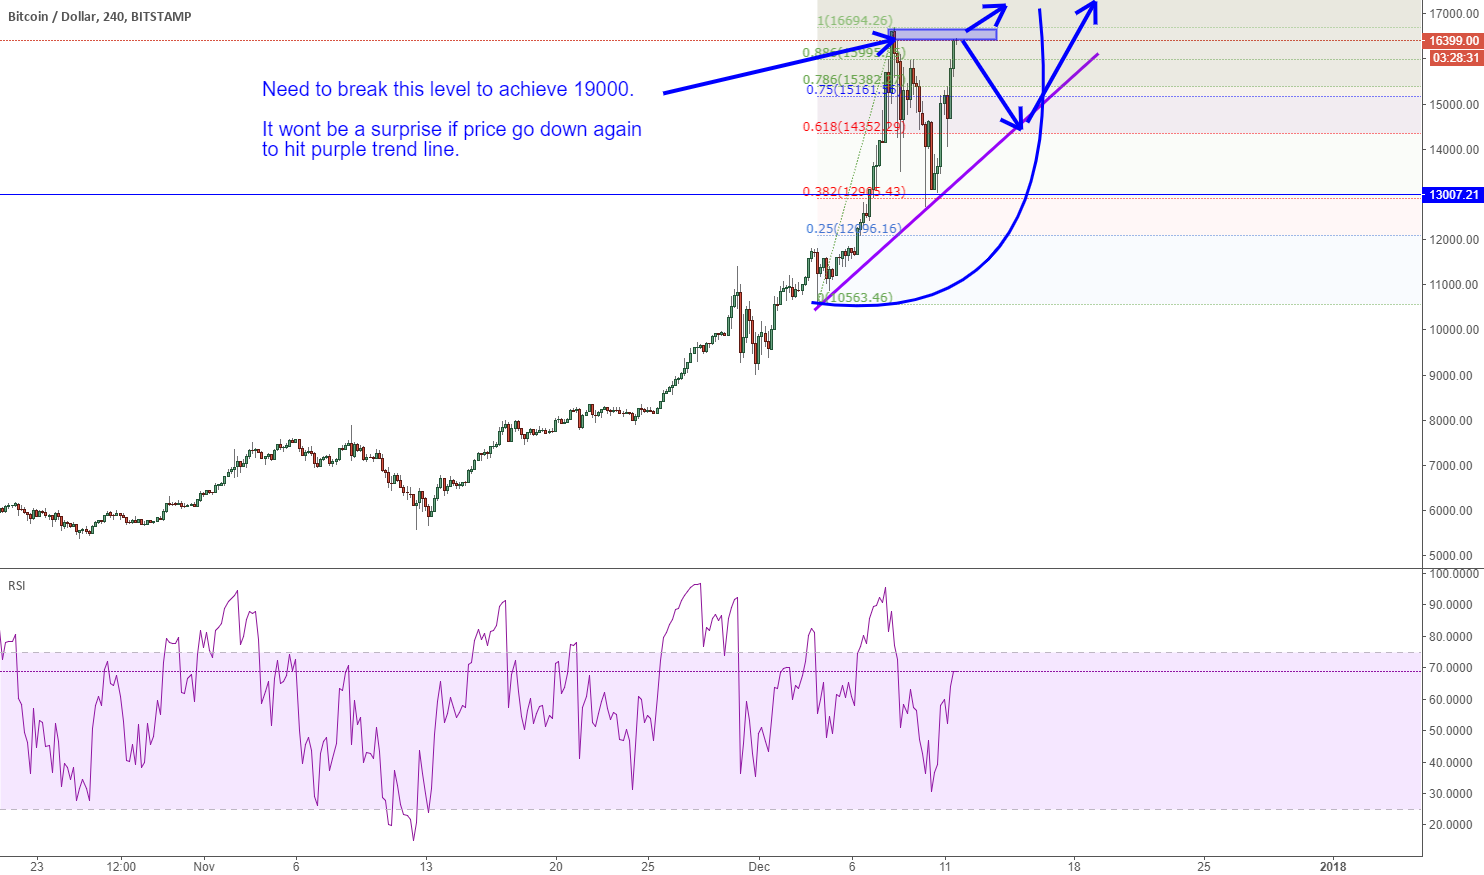 Btcusd Update: Need to break this level to achieve 19000.